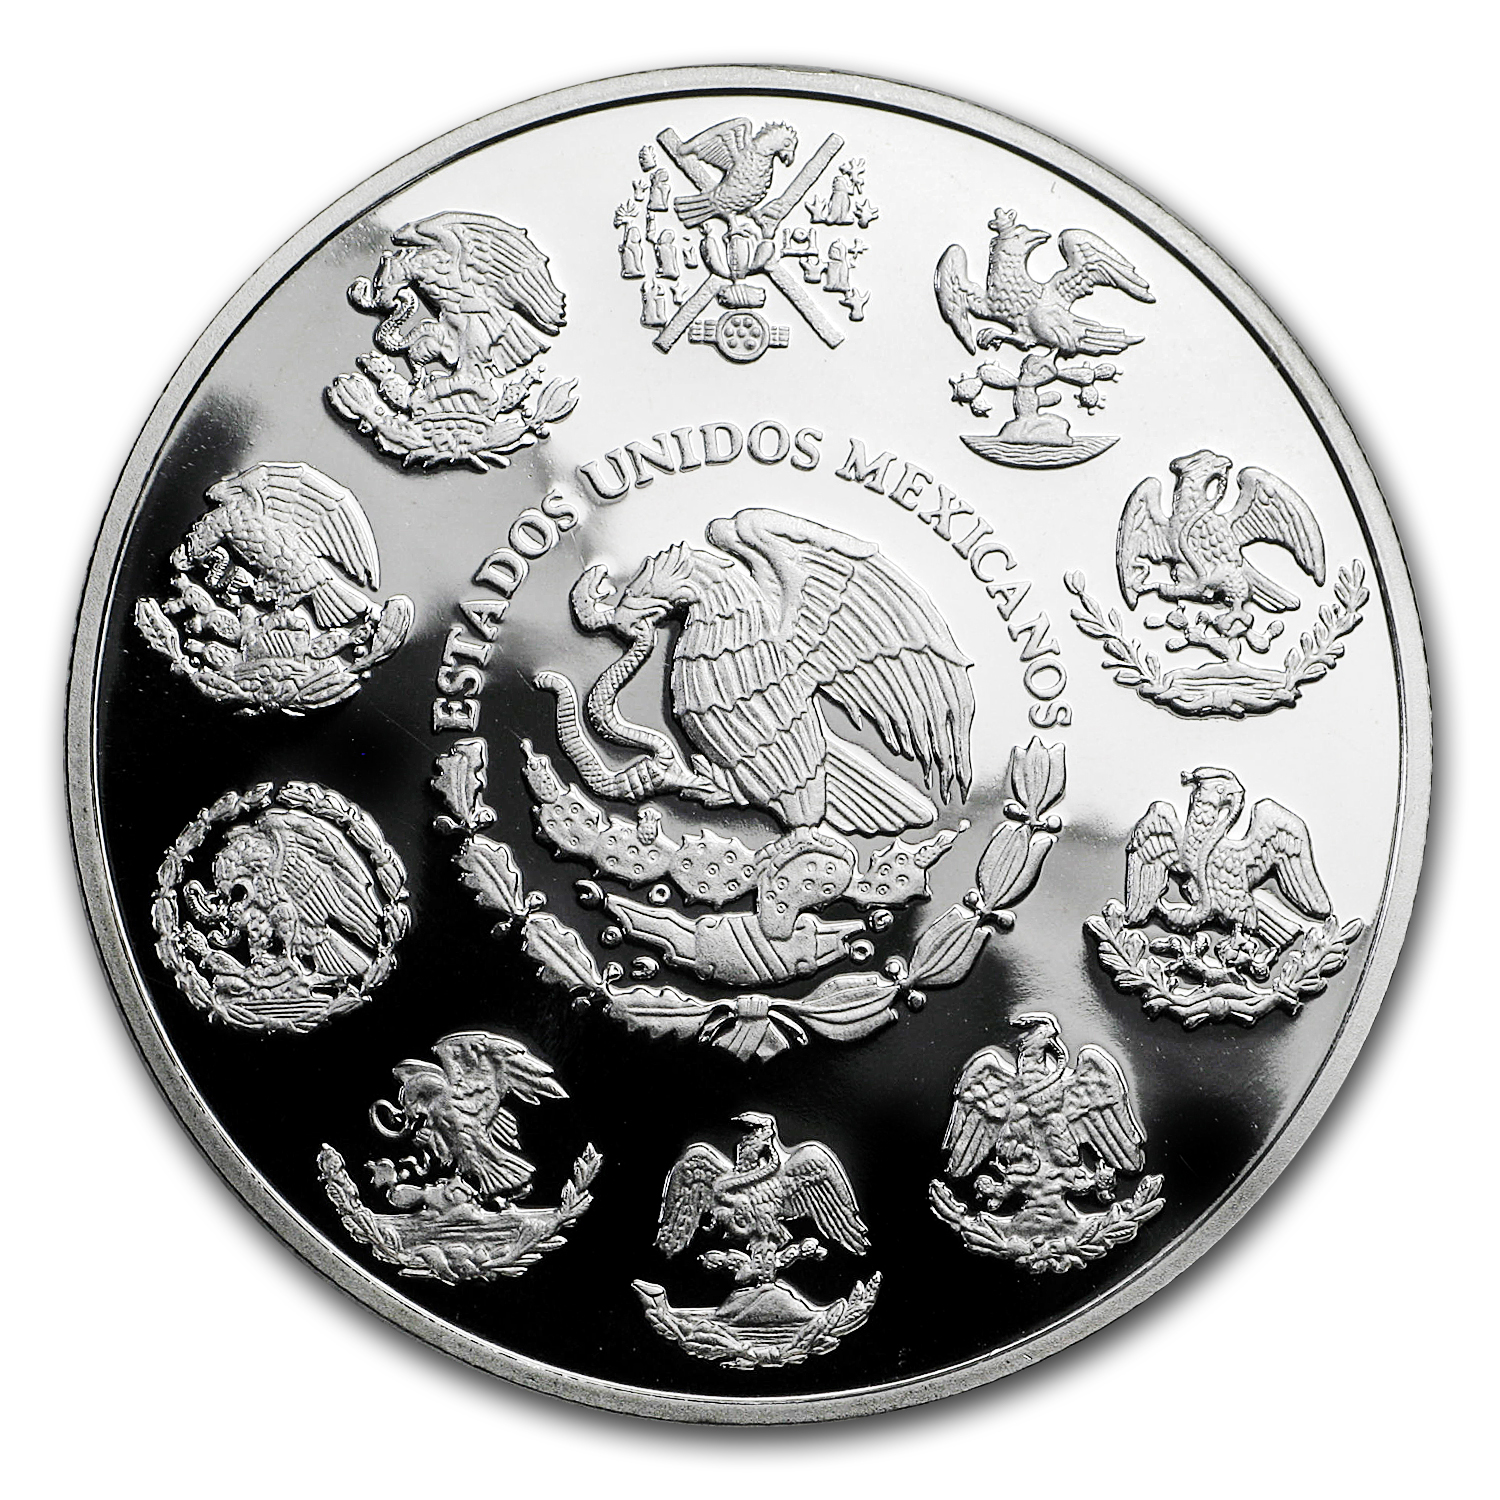 2009 Mexico 1 oz Silver Libertad Proof (In Capsule)